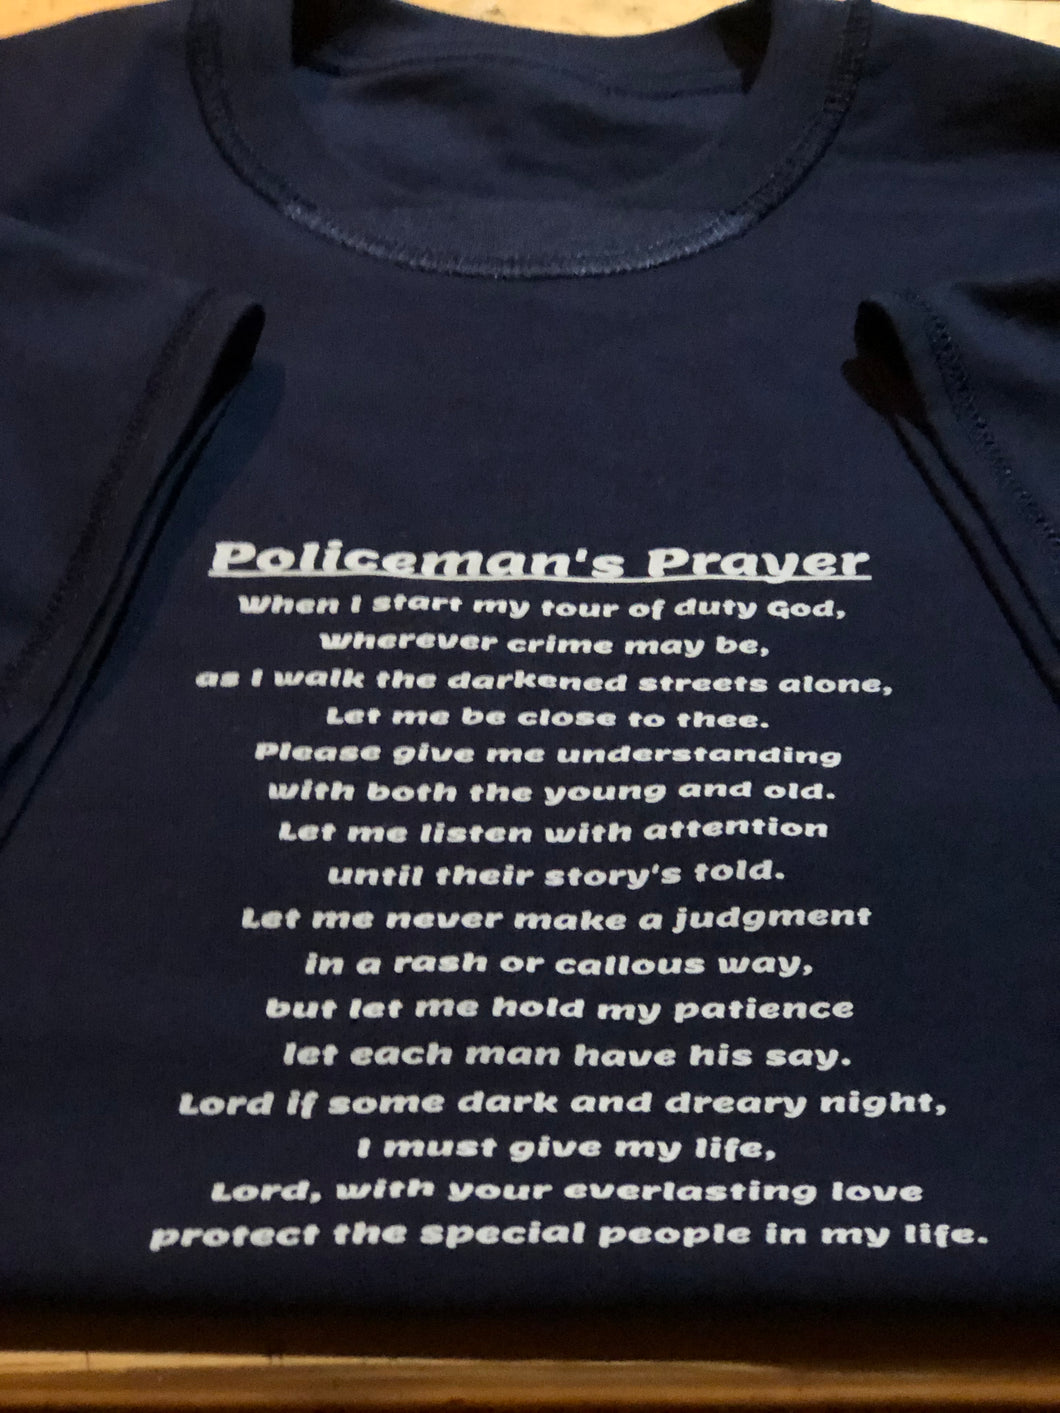 A Policeman's Prayer